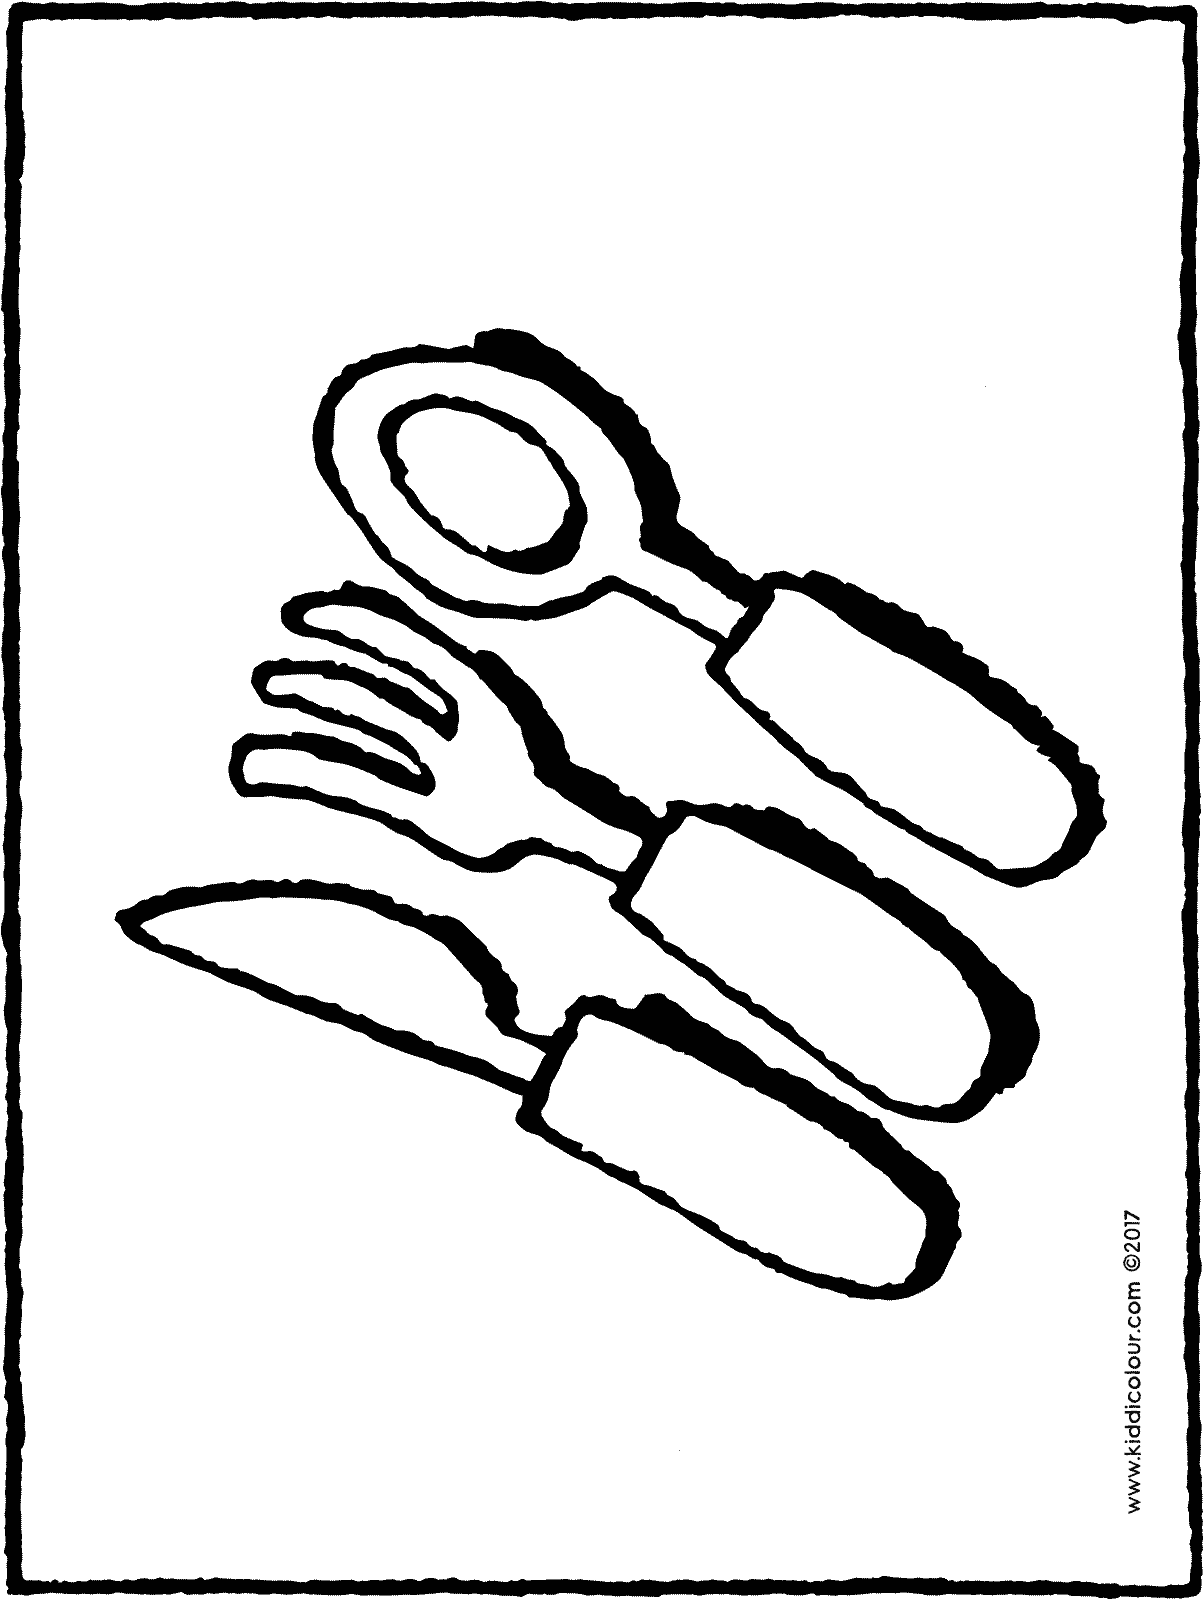 cutlery colouring page drawing picture 01H